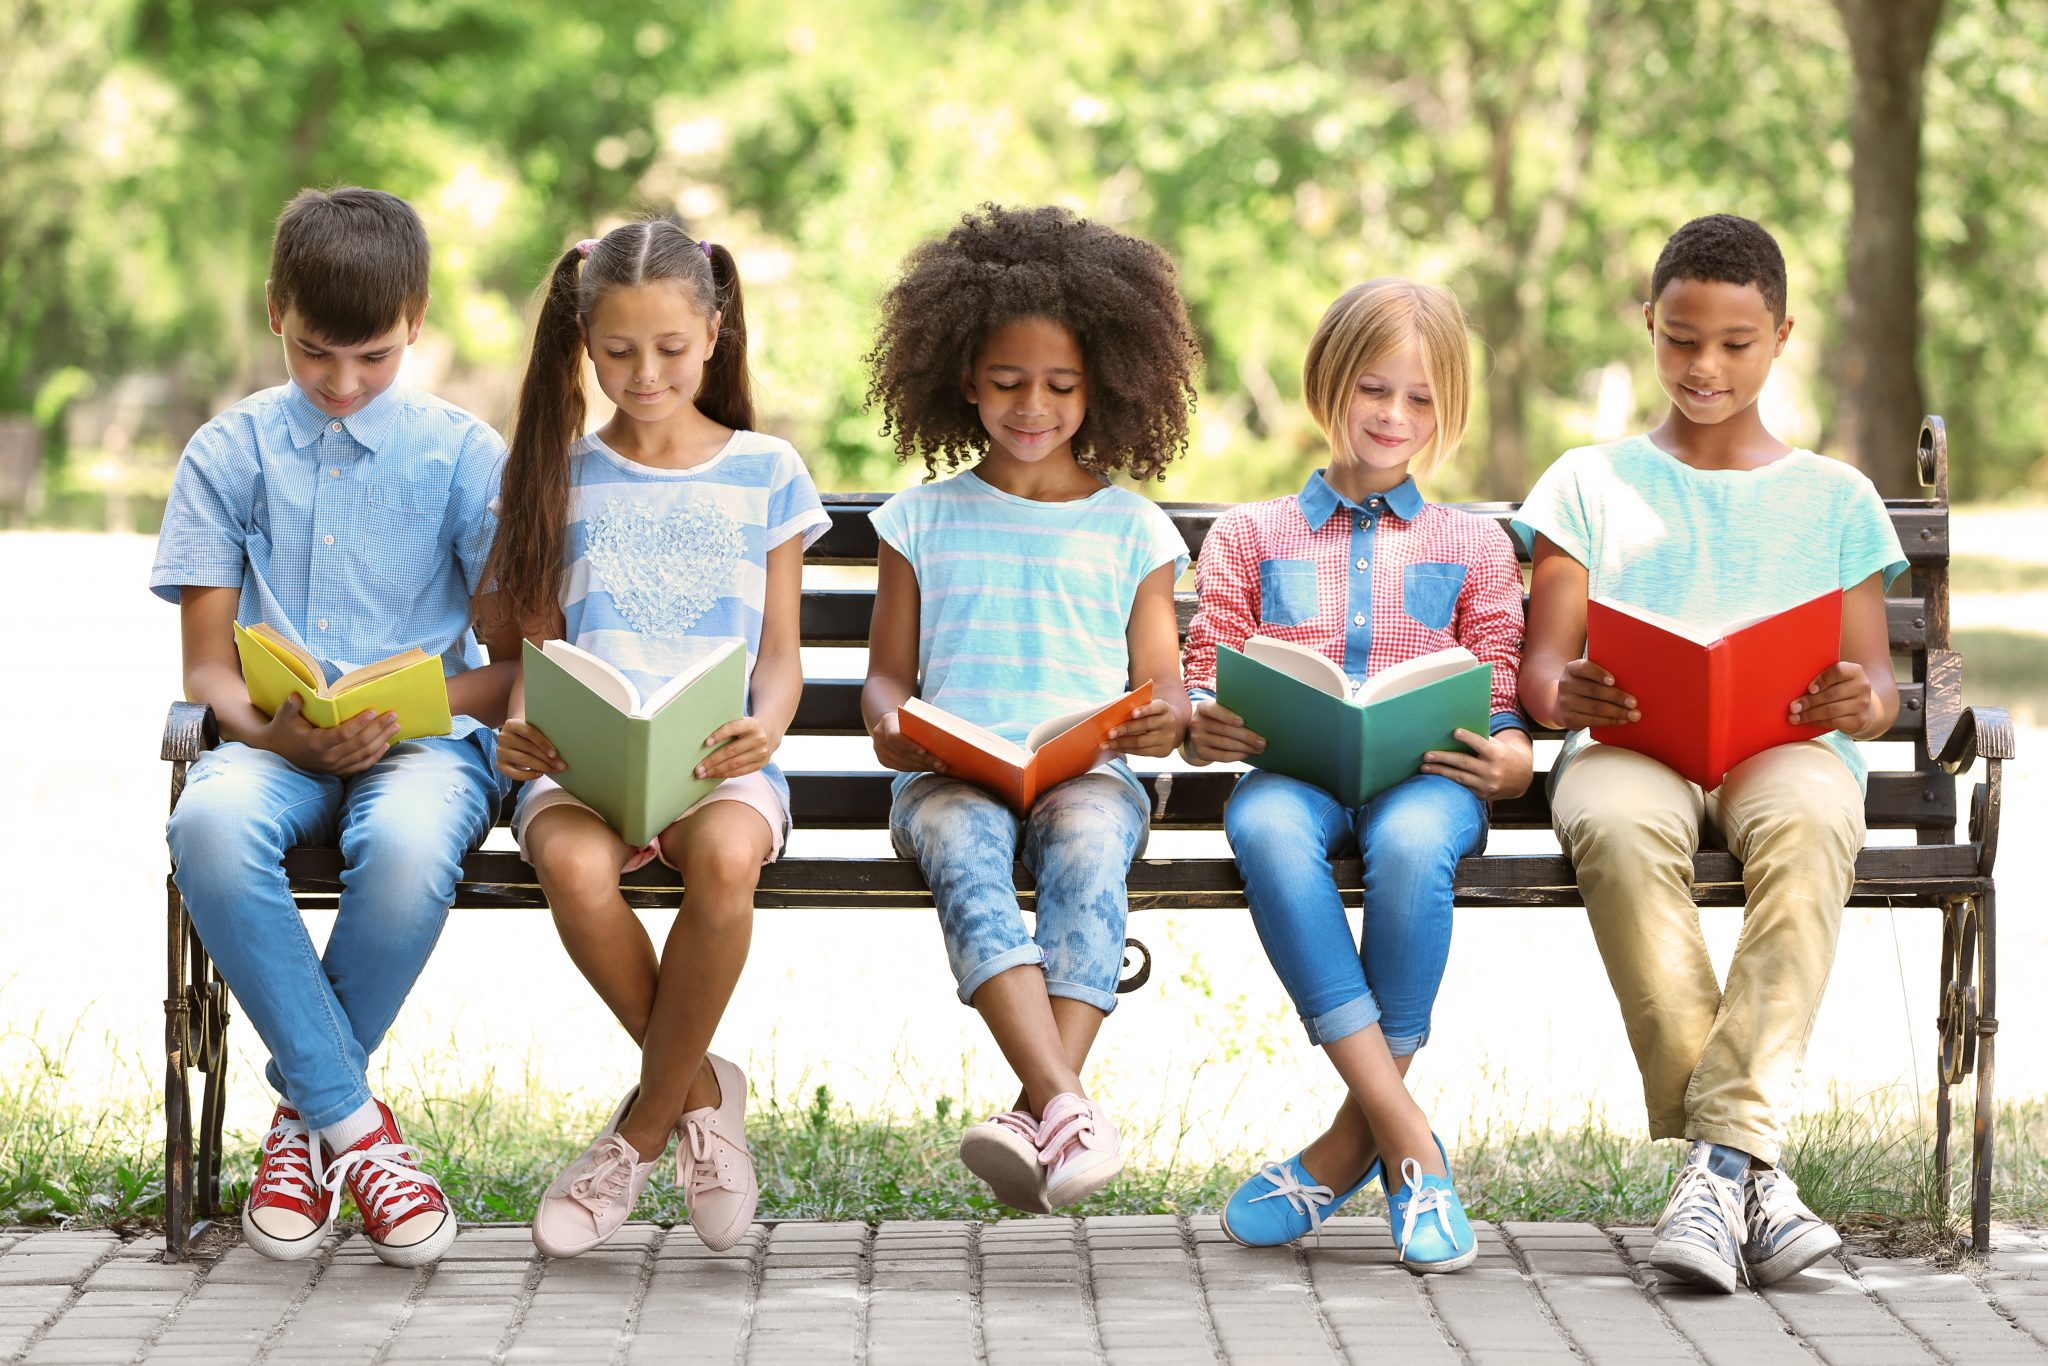 Cute kids reading books on bench